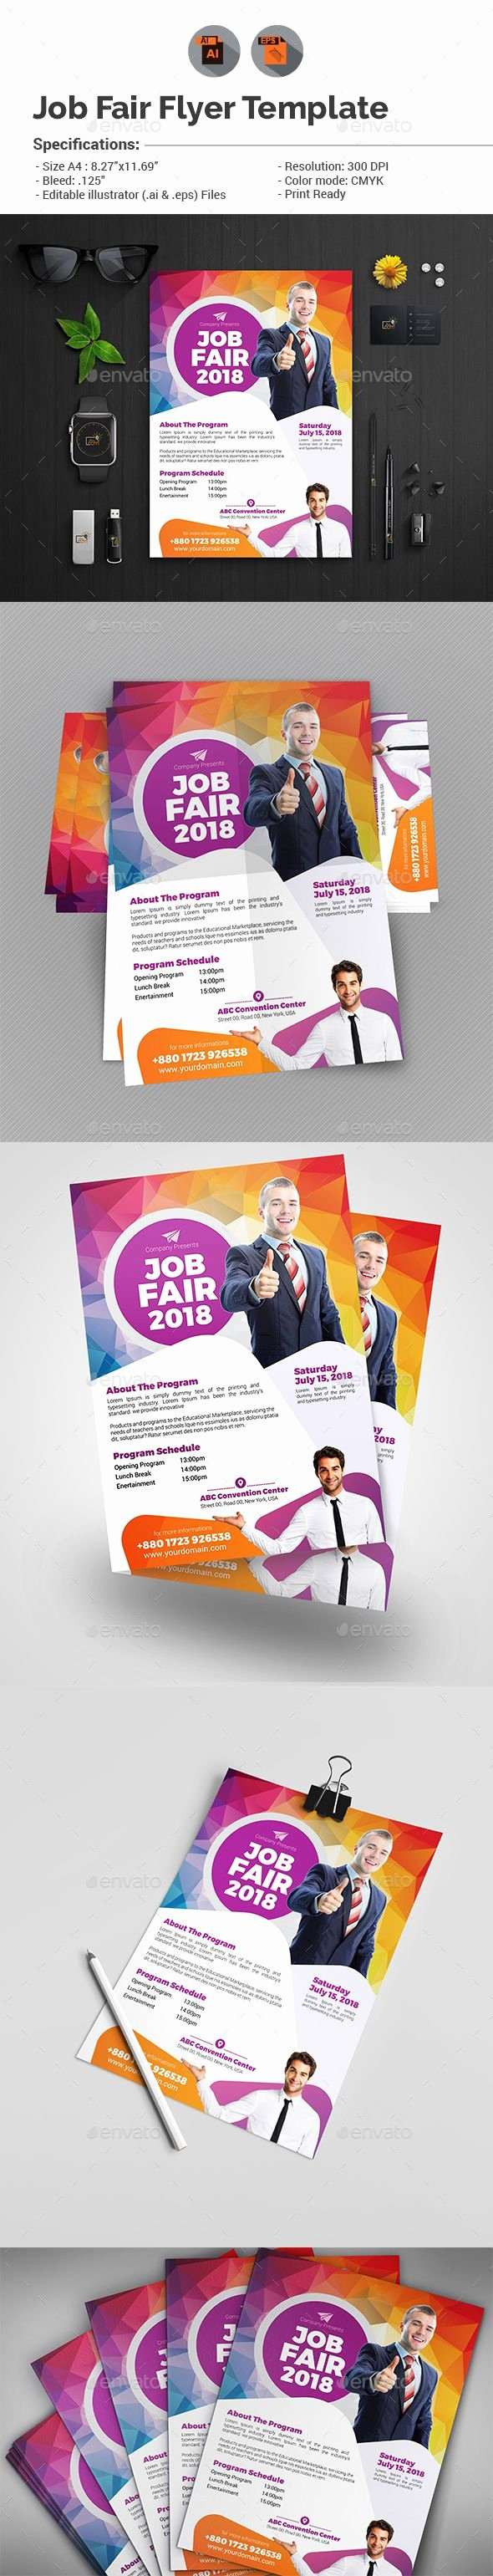 17 Best Ideas About Job Fair On Pinterest